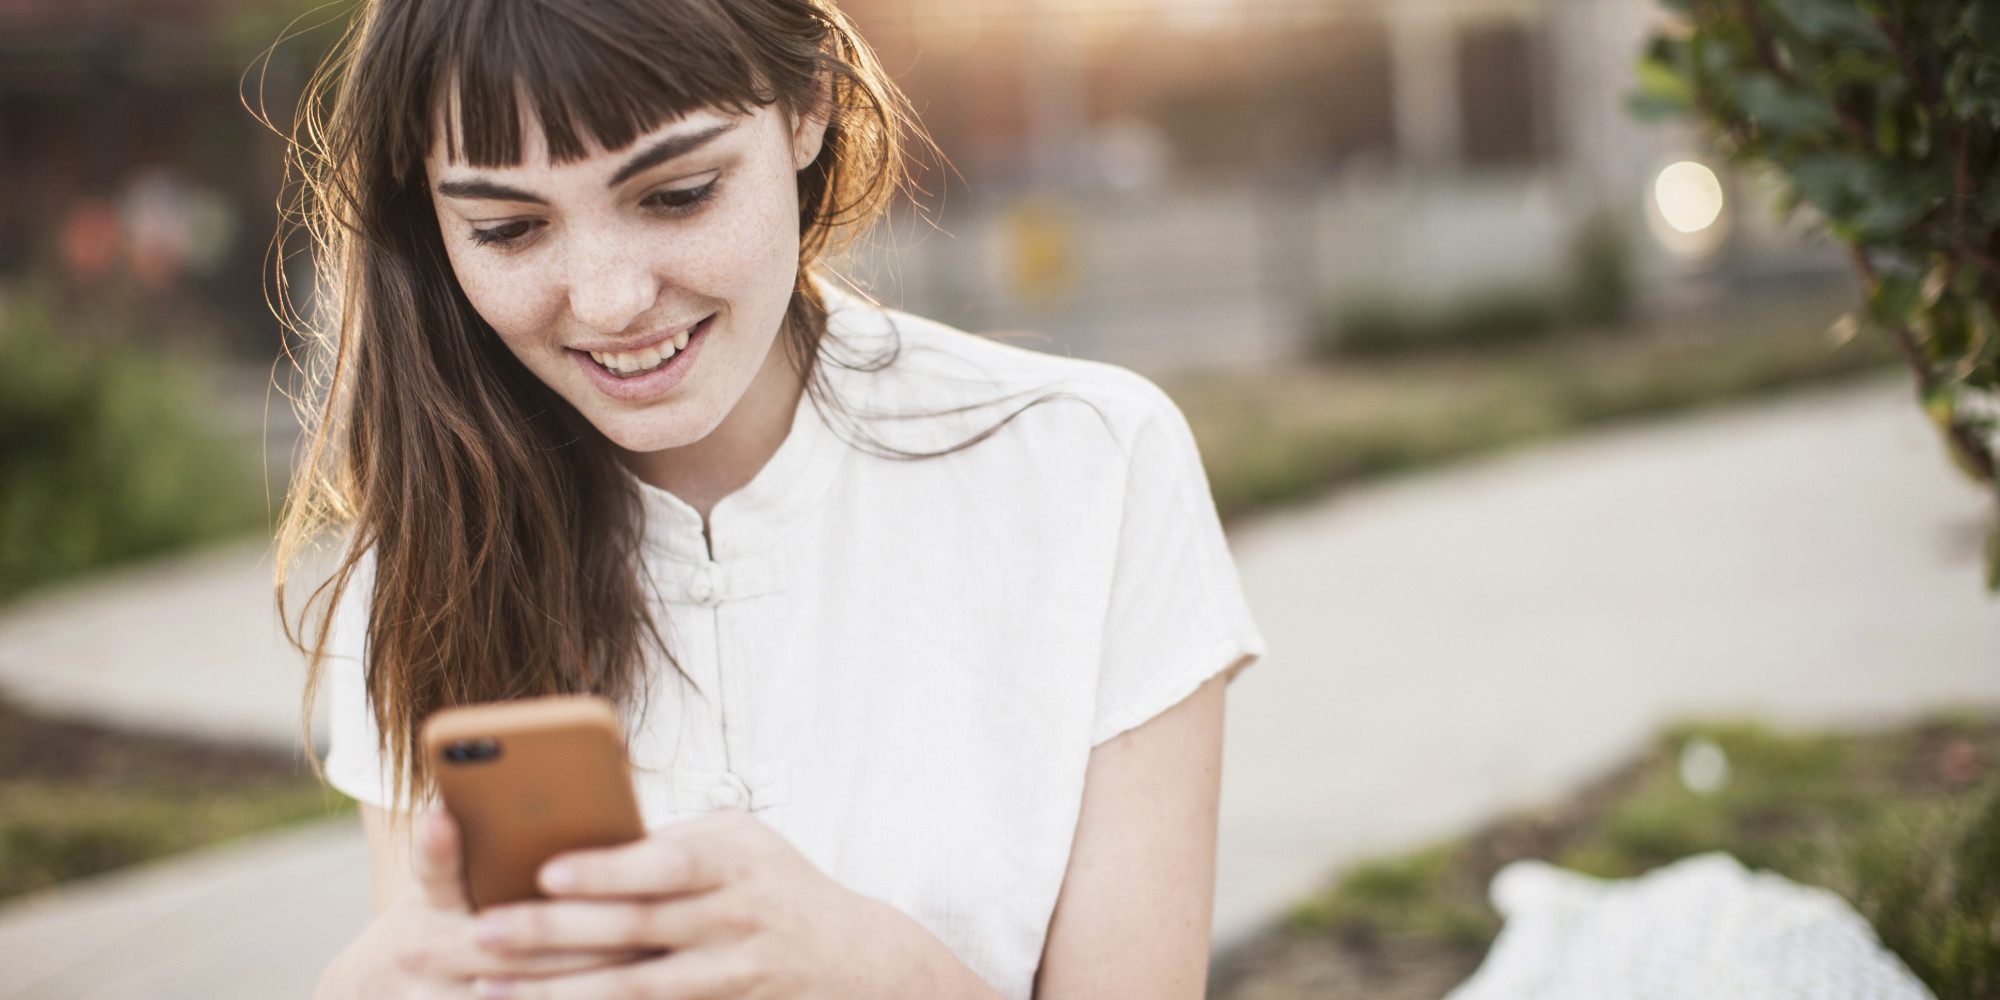 francesca hogi texting while dating rules simplify your love life